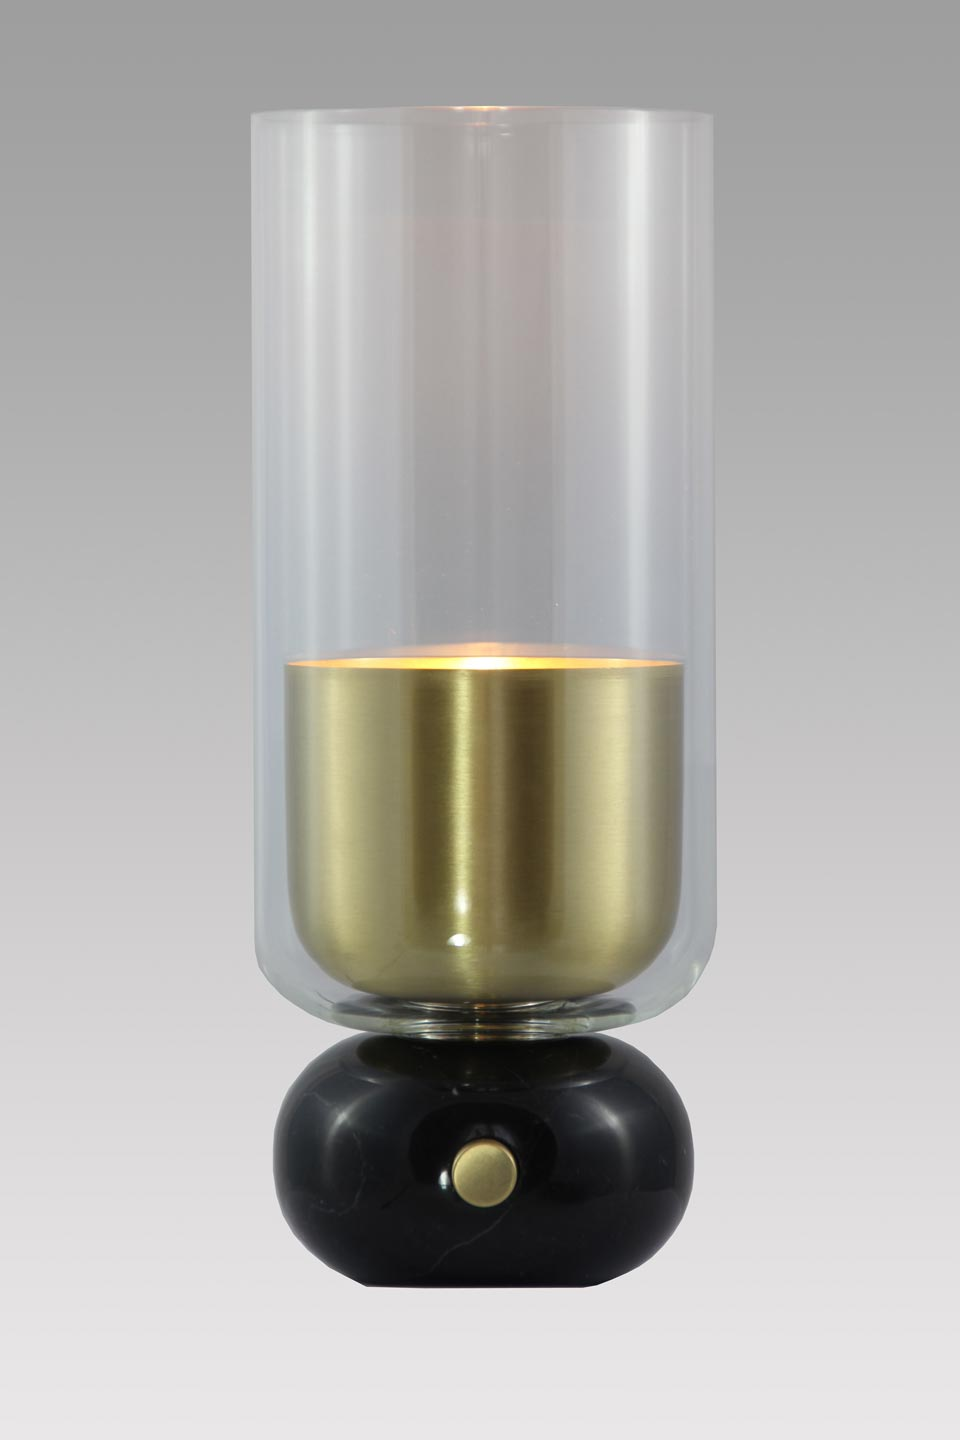 Andromeda black marble and satin brass lamp. Matlight.